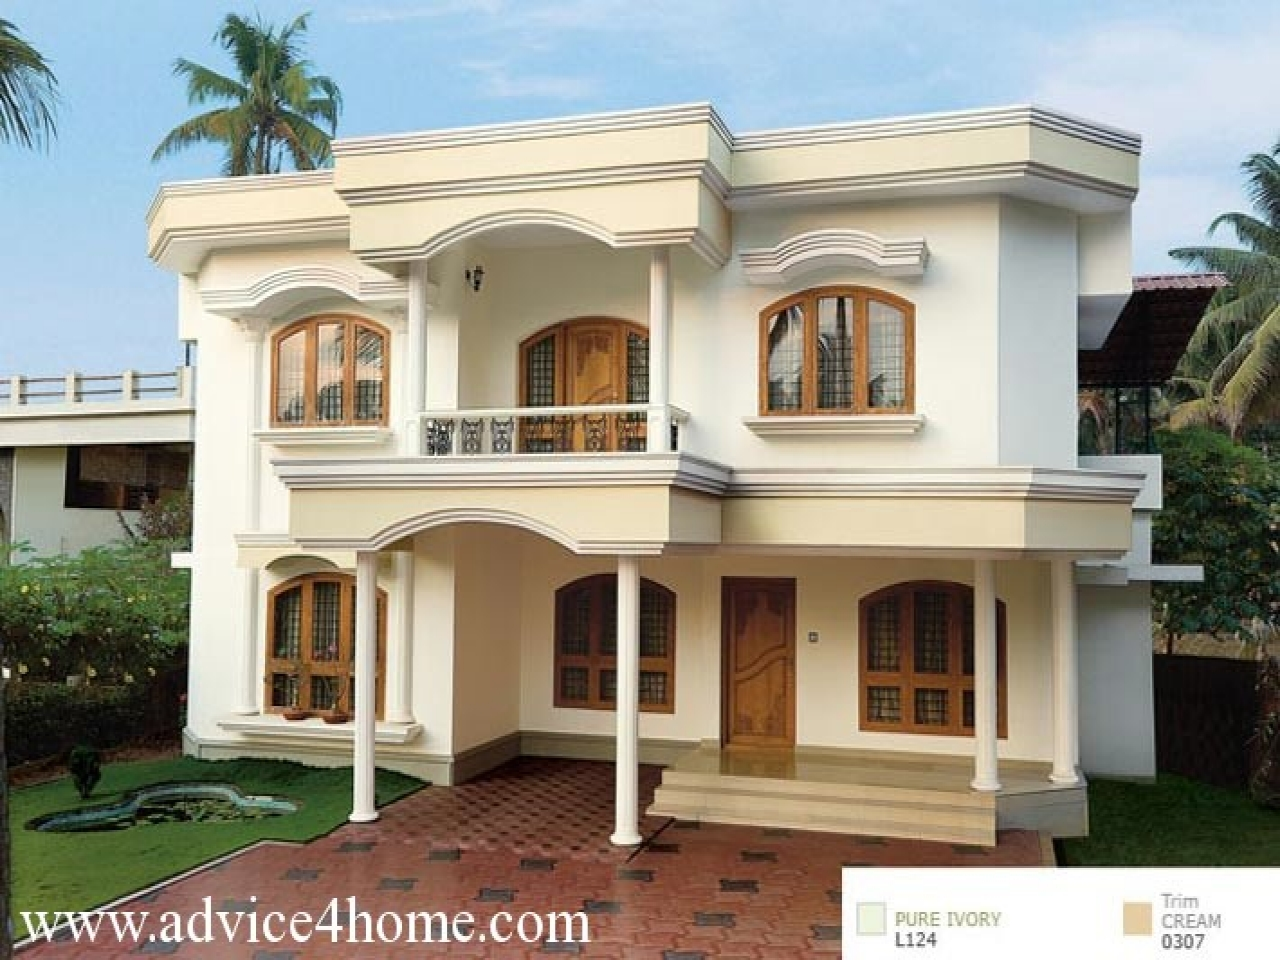 Indian south asian paints colors for home asian paints exterior colours catalogue houses - Exterior paint colors for indian homes collection ...